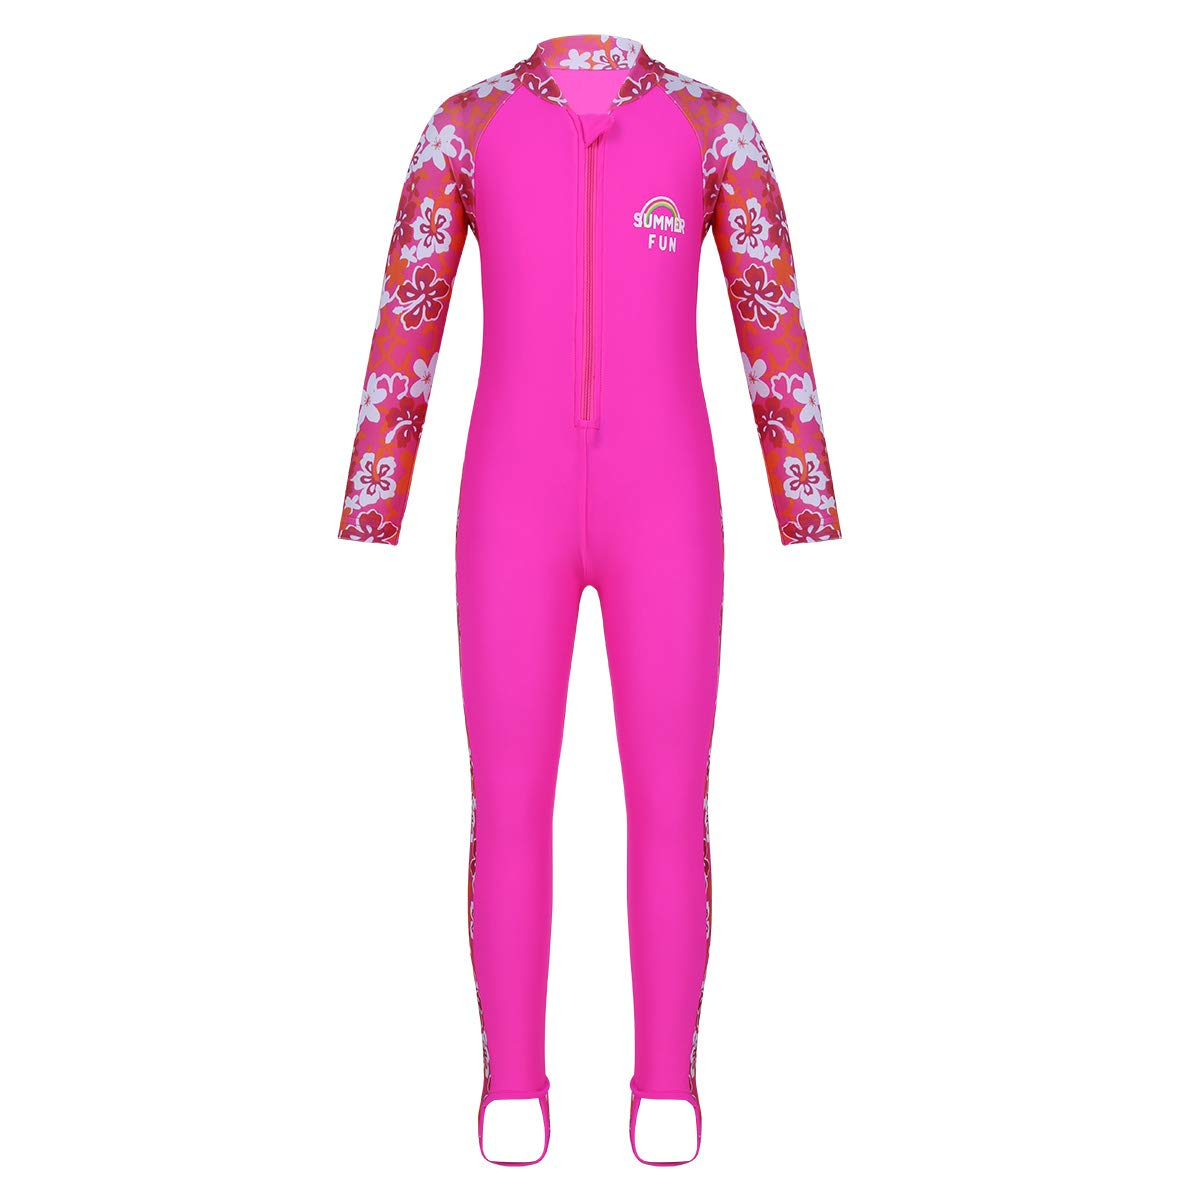 Sunsuits moily Girls Kids Floral Long Sleeve One-Piece Rashguard Swimsuit Keep Warm Surfing//Diving UPF 50